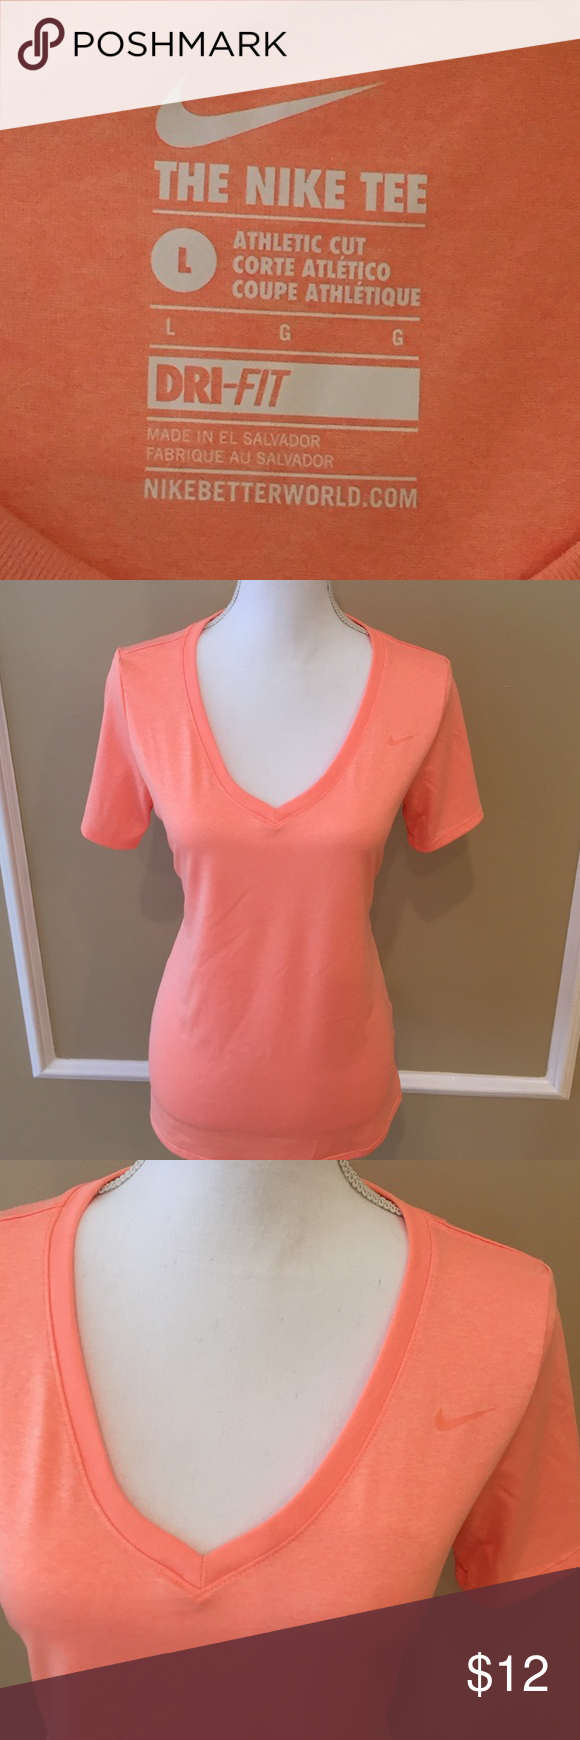 Nike dri-fit shirt Only worn 1-2 times.  Peachy-orange Nike dri-fit athletic top.  Perfect for your New Years resolutions! Nike Tops